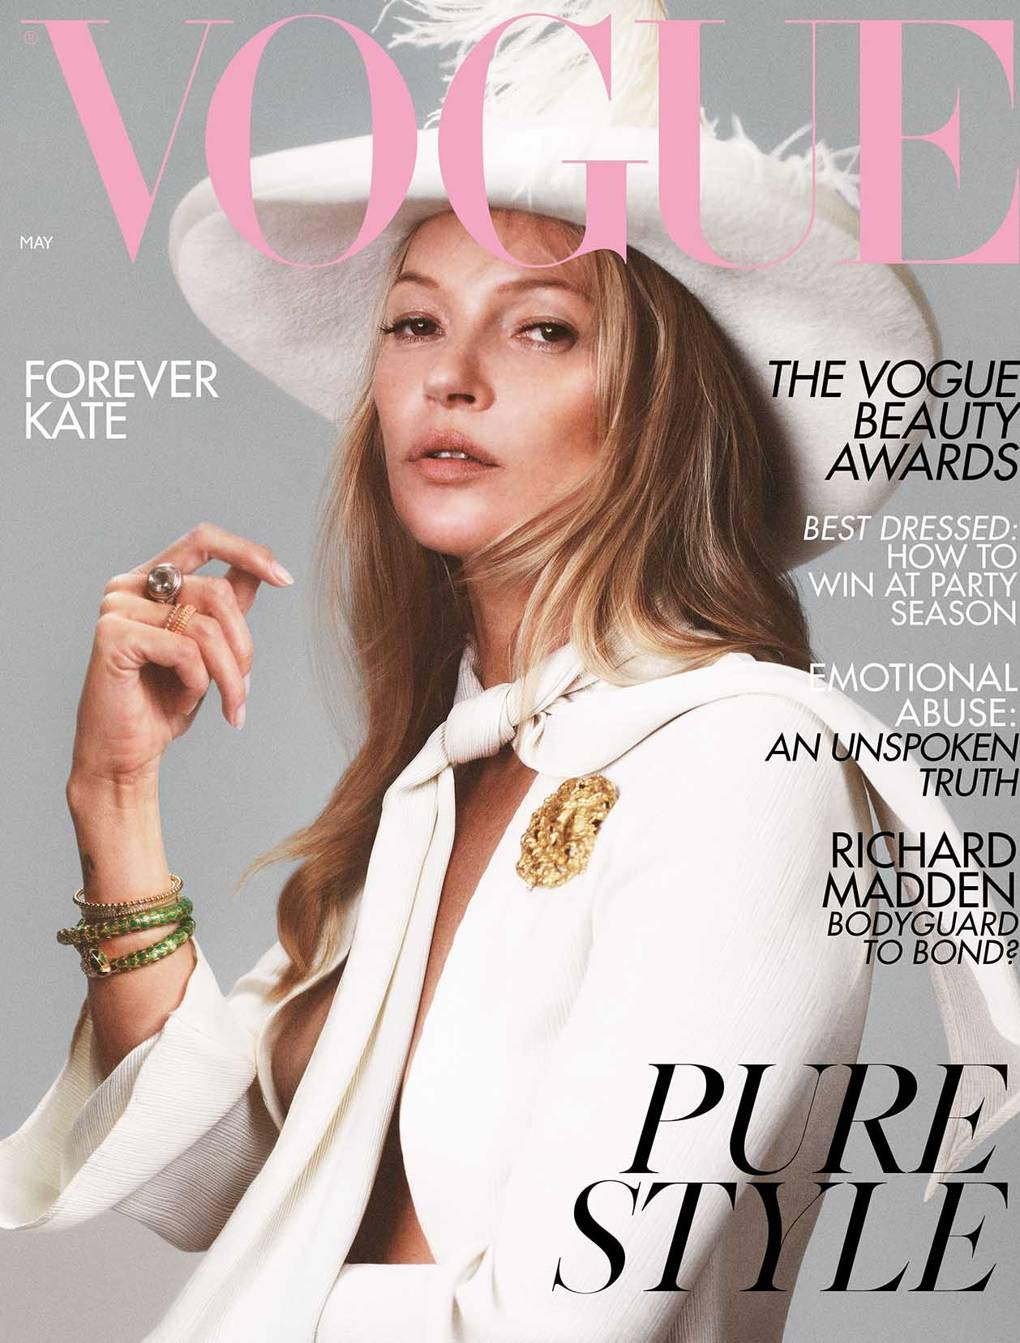 VOGUE UK (BRITISH) MAY 2019 KATE MOSS COVER-EXCLUSIVELY FROM